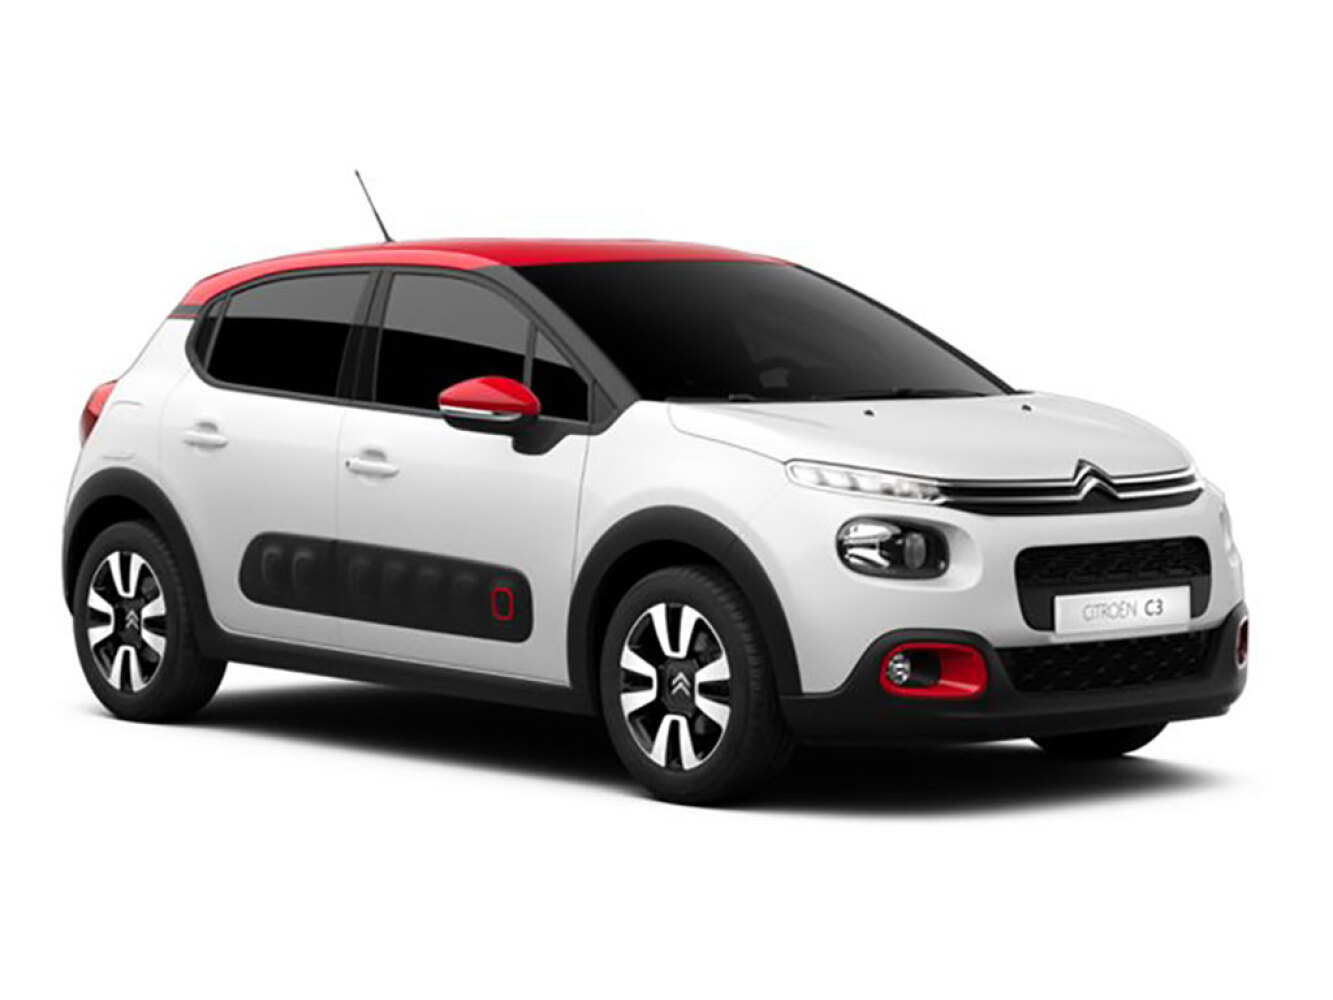 new citroen c3 1 2 puretech 110 flair 5dr eat6 petrol hatchback for sale bristol street. Black Bedroom Furniture Sets. Home Design Ideas